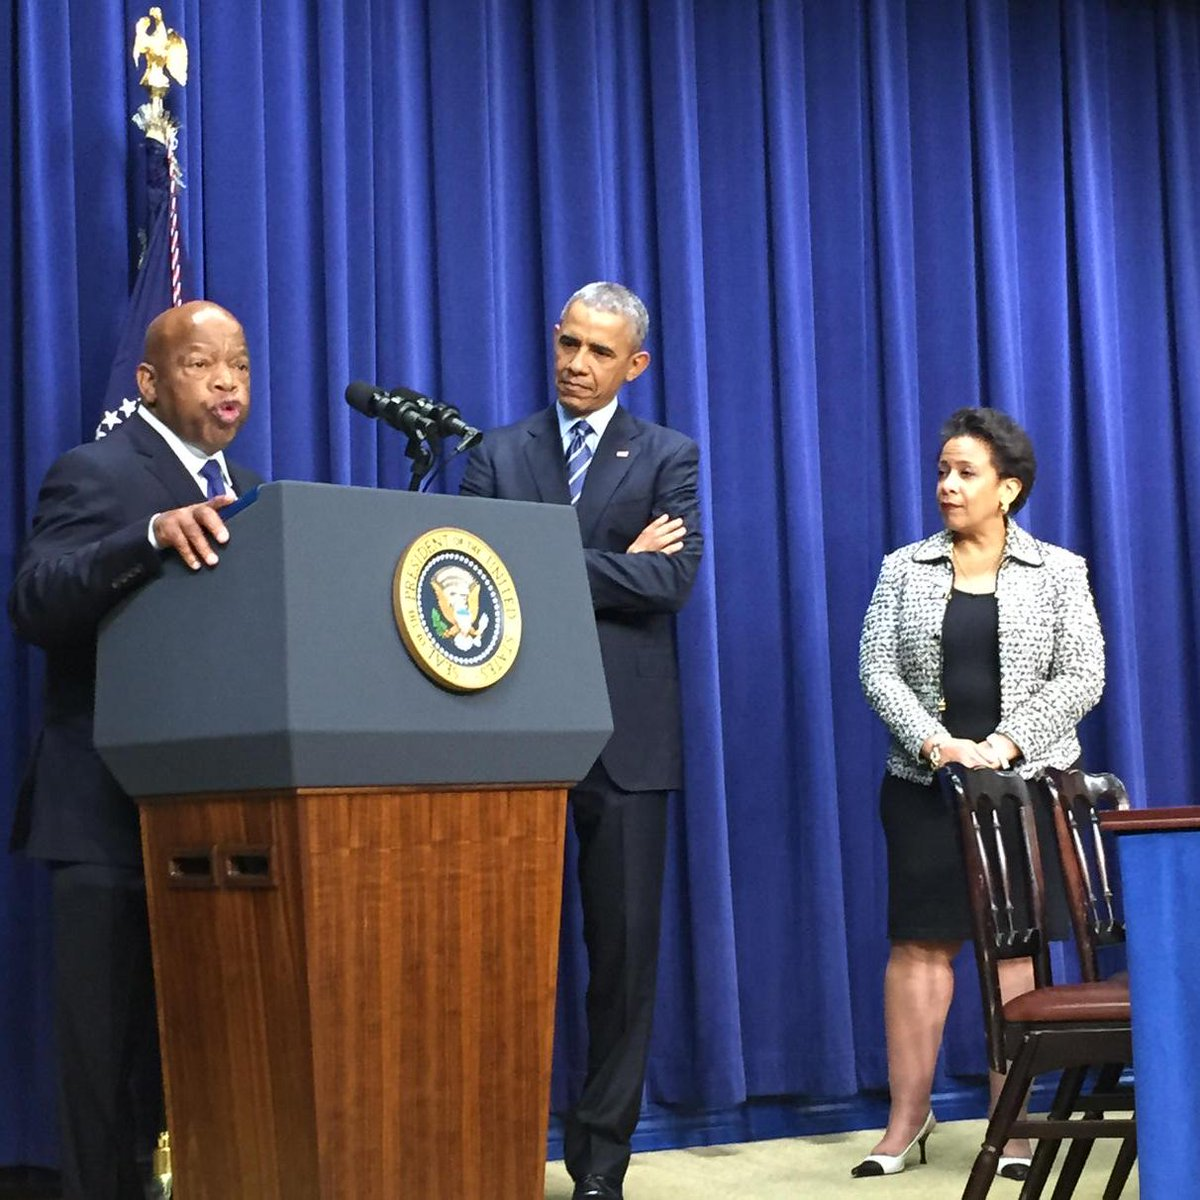 AG @LorettaLynch joins @POTUS and #JohnLewis to commemorate the 50th Anniversary of the Voting Rights Act #VRA50 http://t.co/5AhnxB0R79